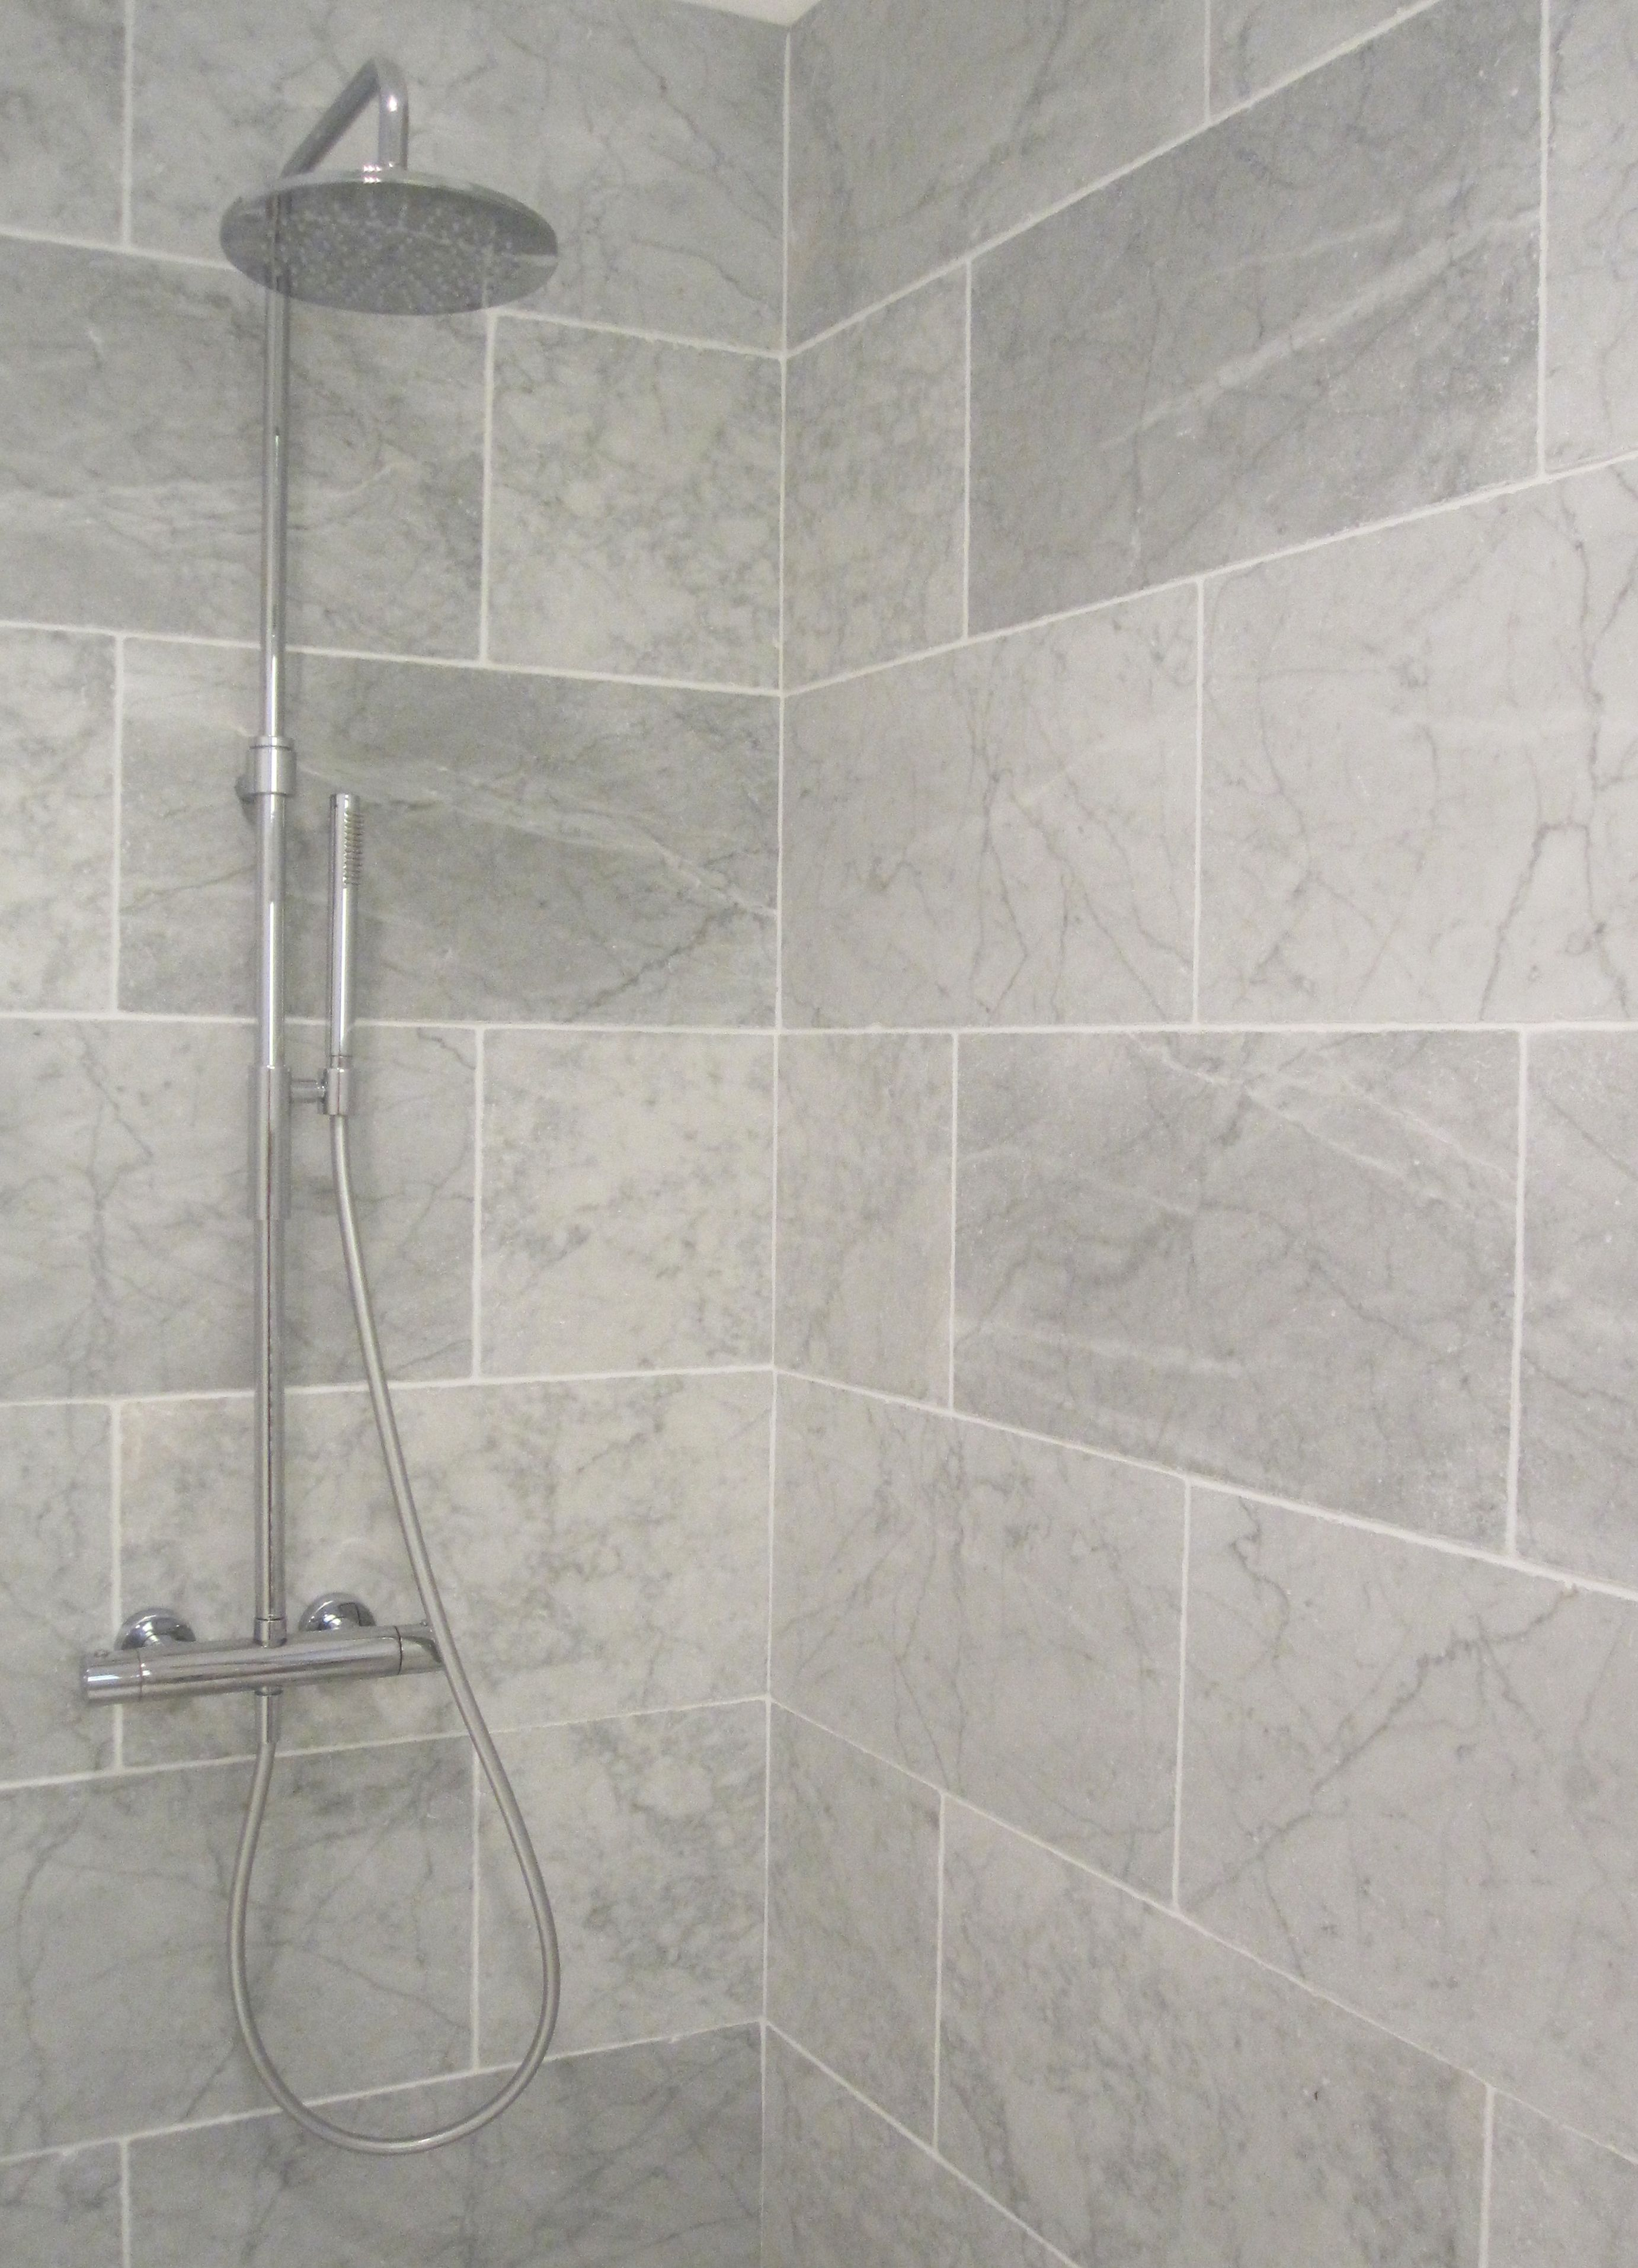 Small Bathroom Tile Bathroom Small Grey Bathrooms Bathroom Shower Tile